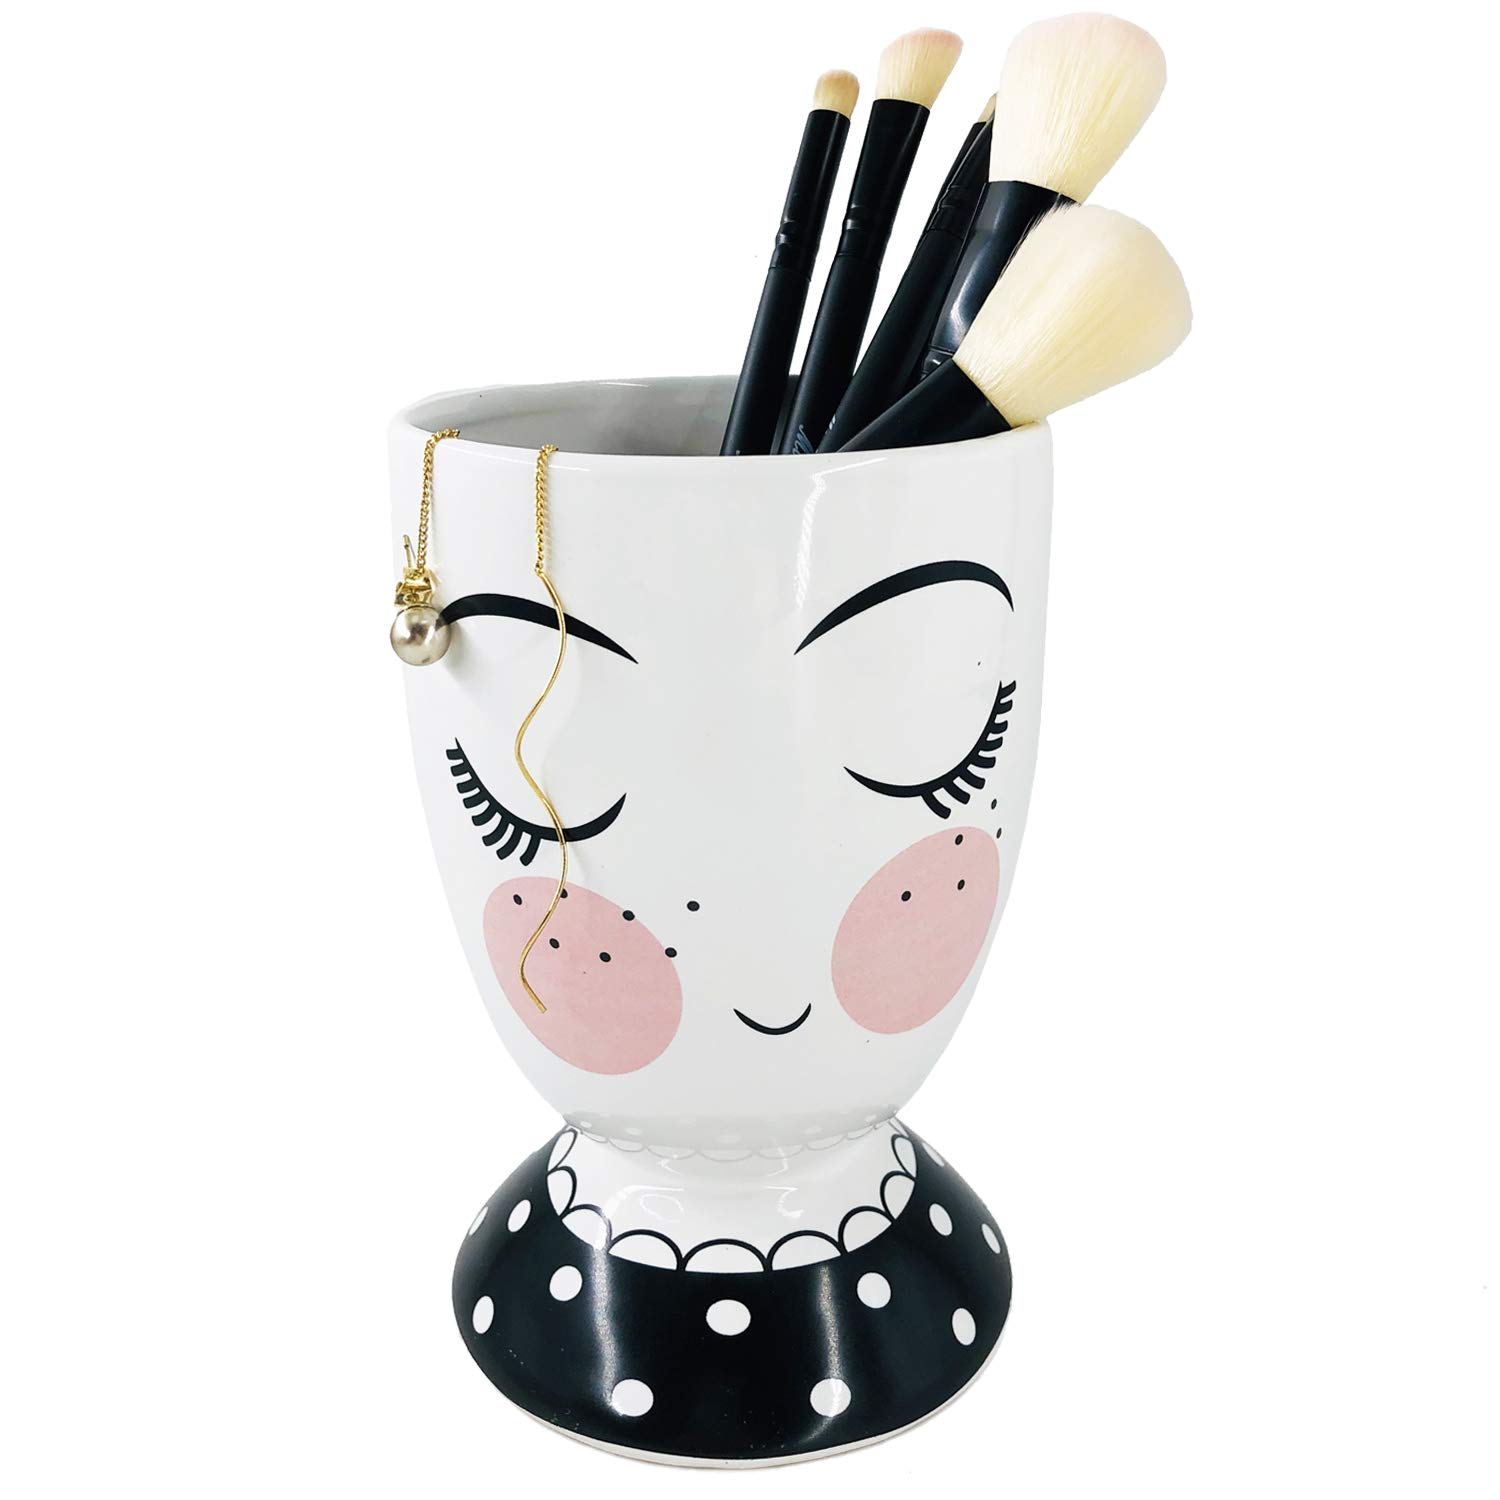 Forward Makeup Brush Holder Organizer, Cup Storage Cosmetic Tools for Vanity Countertops, Perfect for Makeup Brushes, Eyeliners and Mascaras, Also Great As Kitchen Cutlery Storage Cup White Ceramic